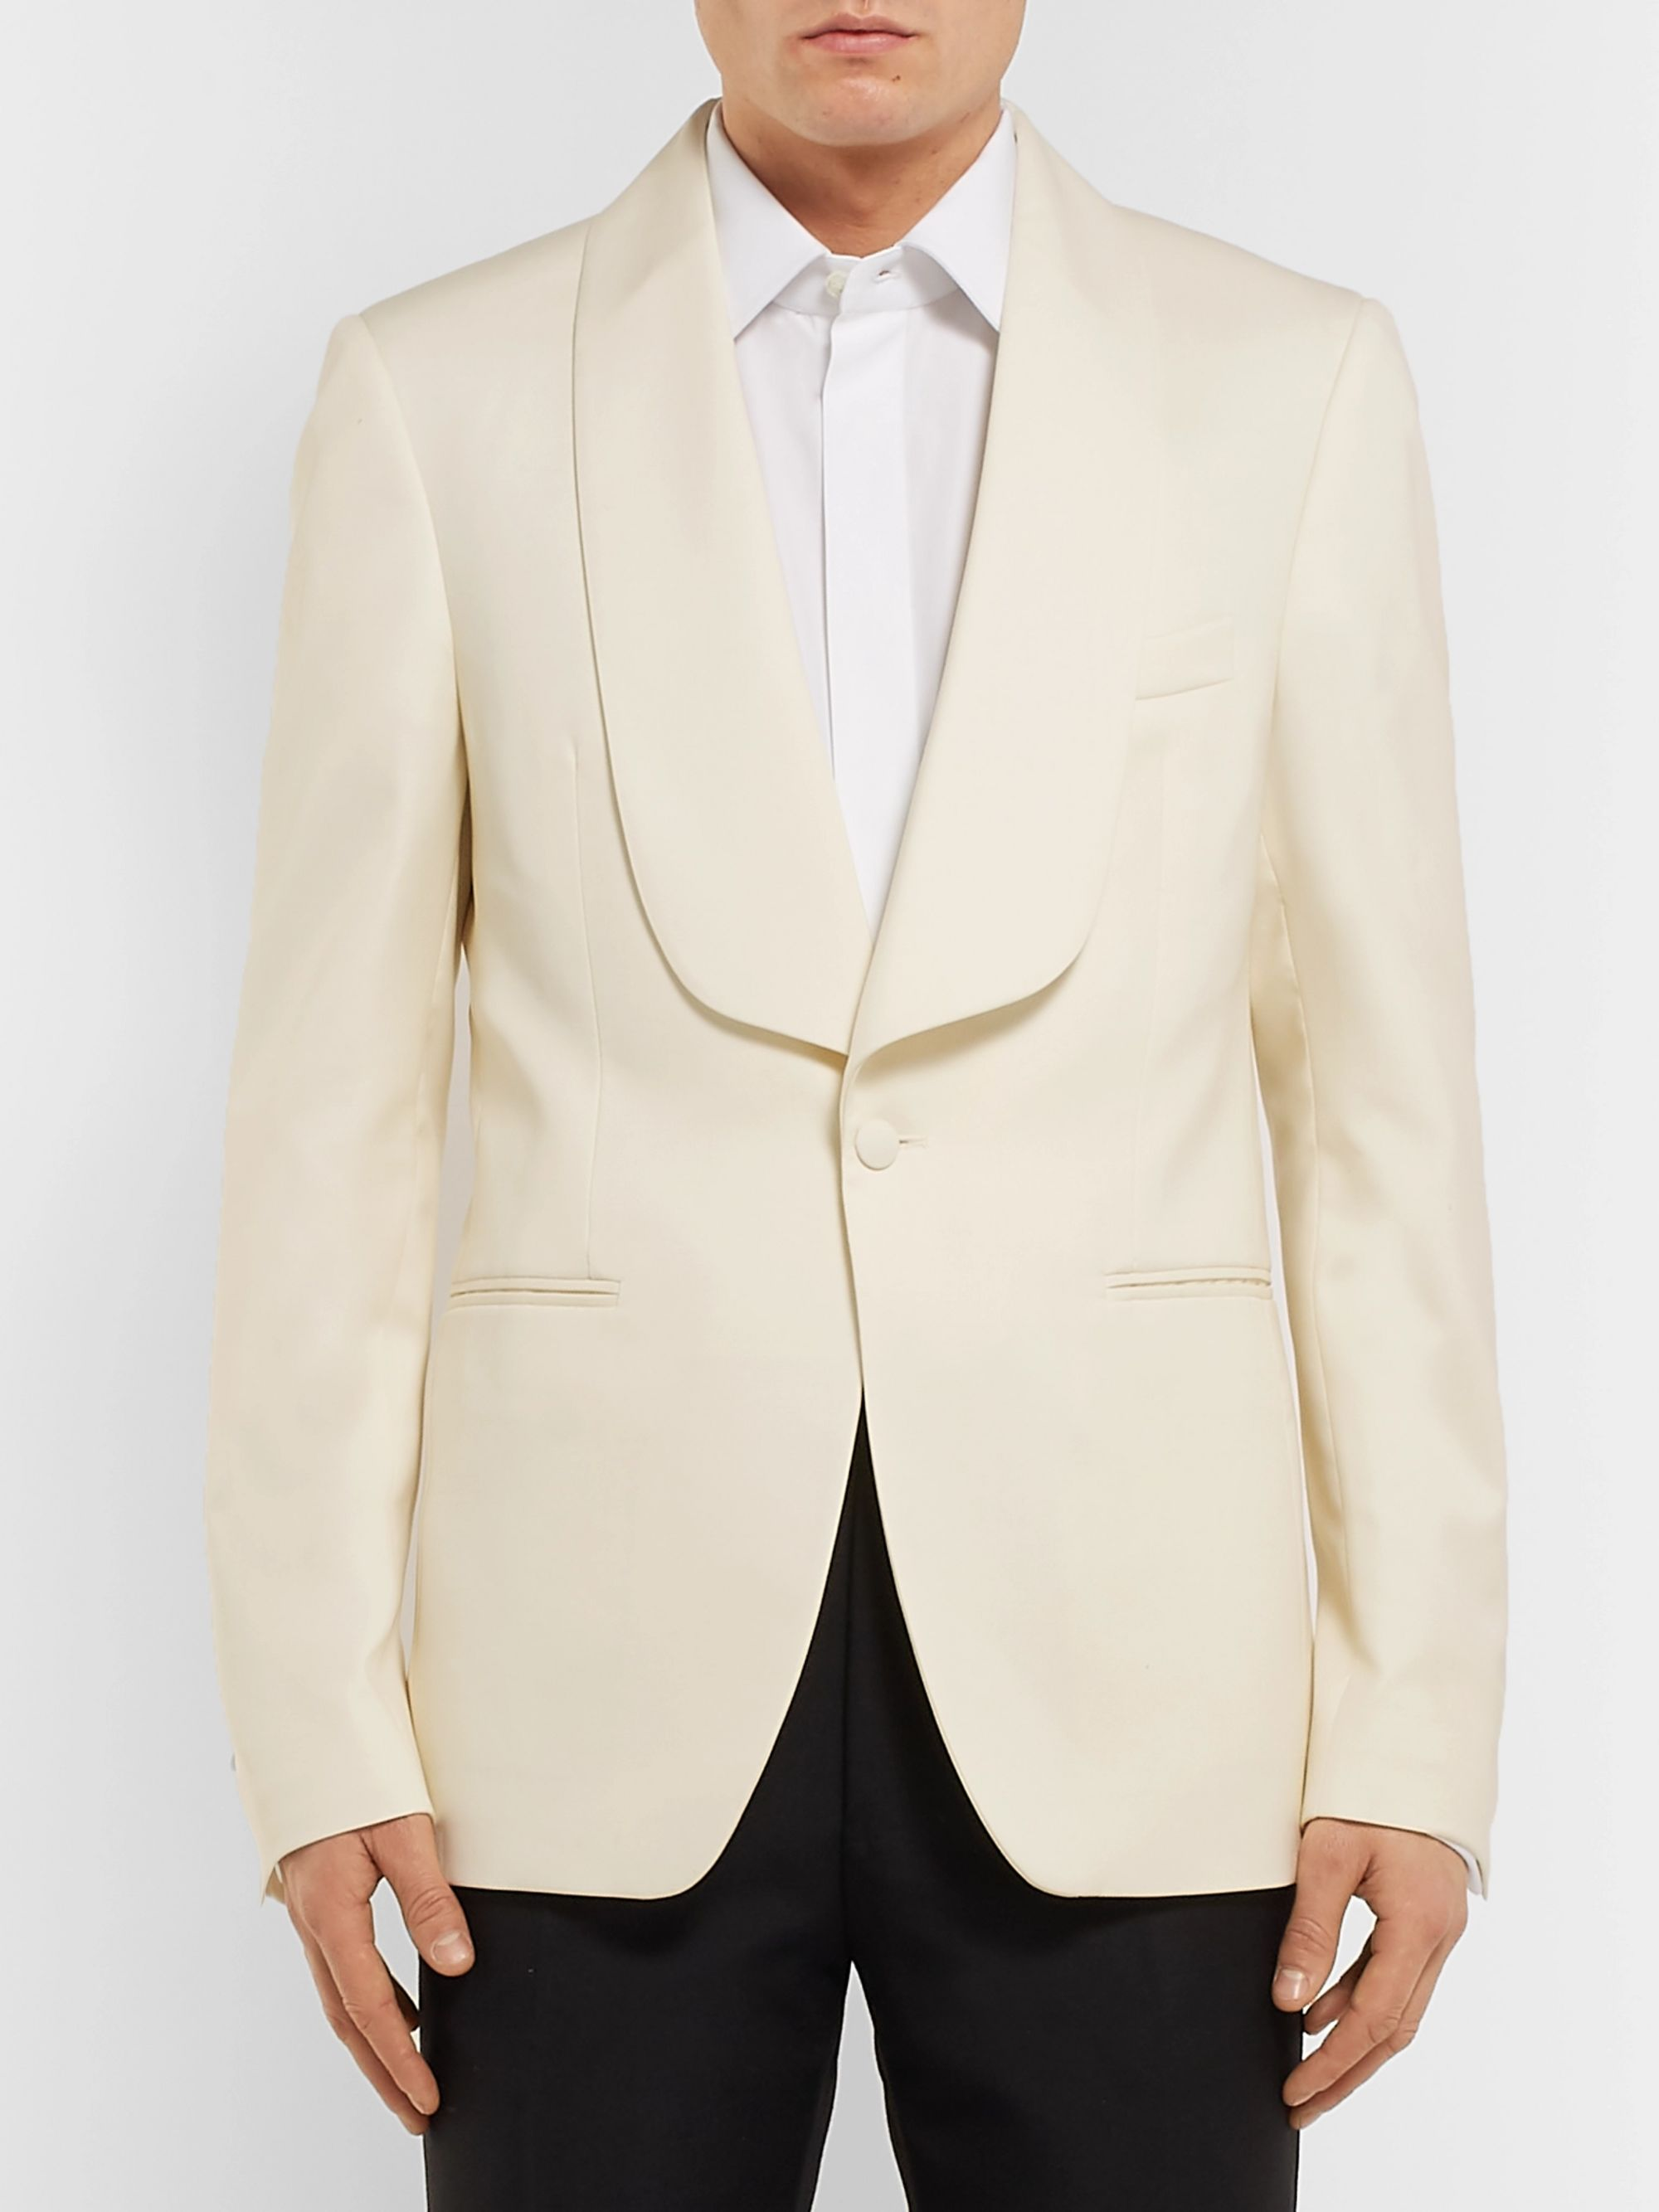 SALLE PRIVÉE White Bori Slim-Fit Wool Tuxedo Jacket